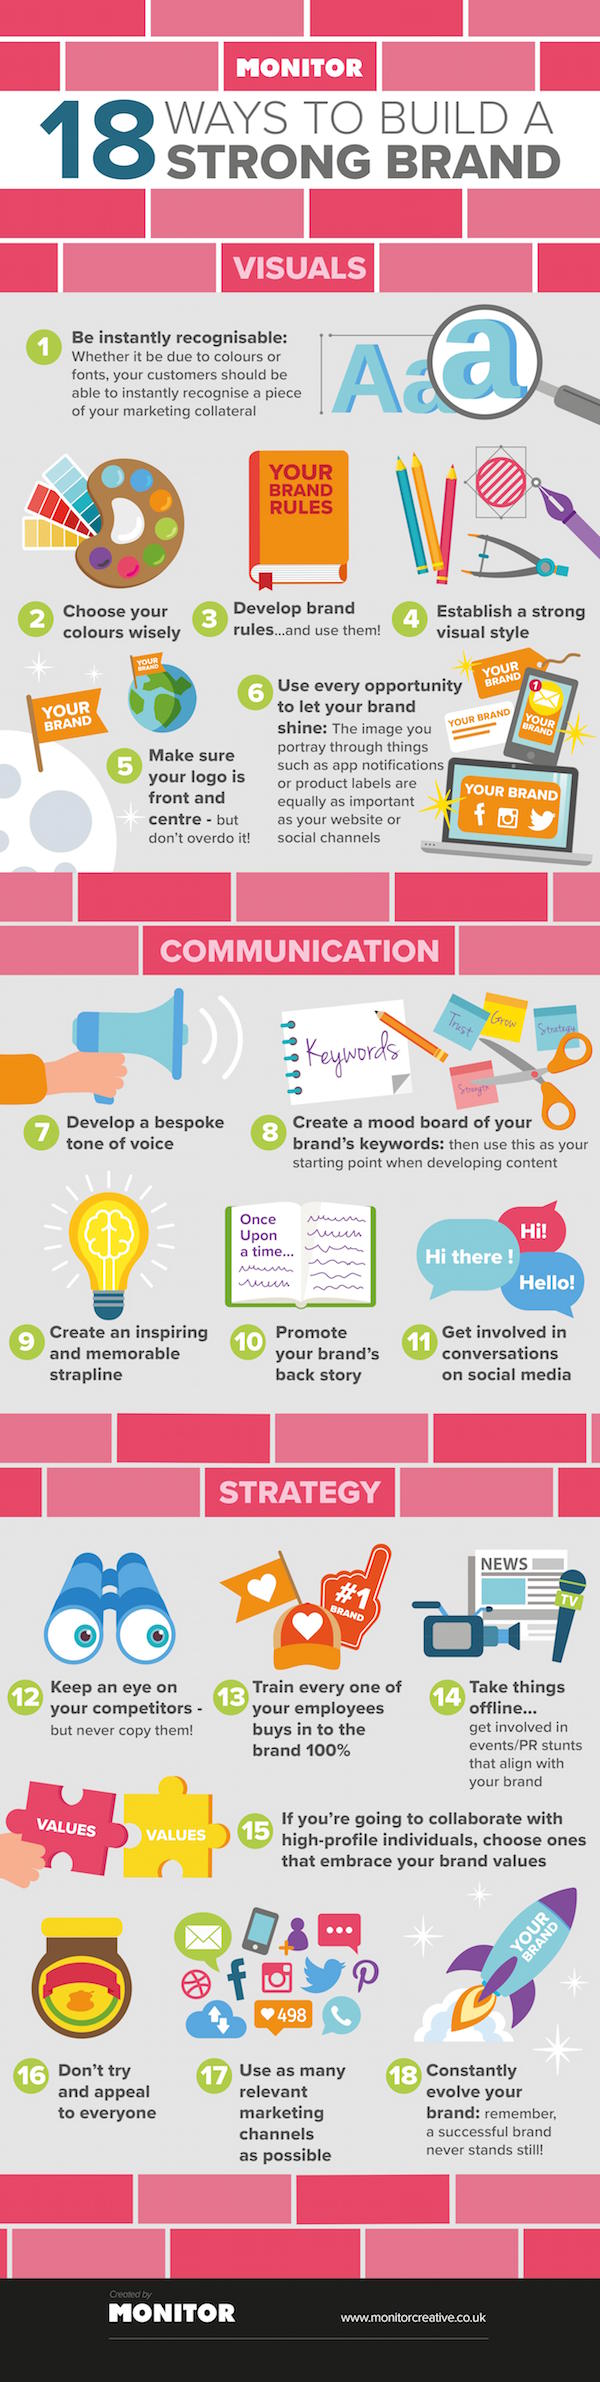 Infographic: 18 Ways To Build A Strong Brand